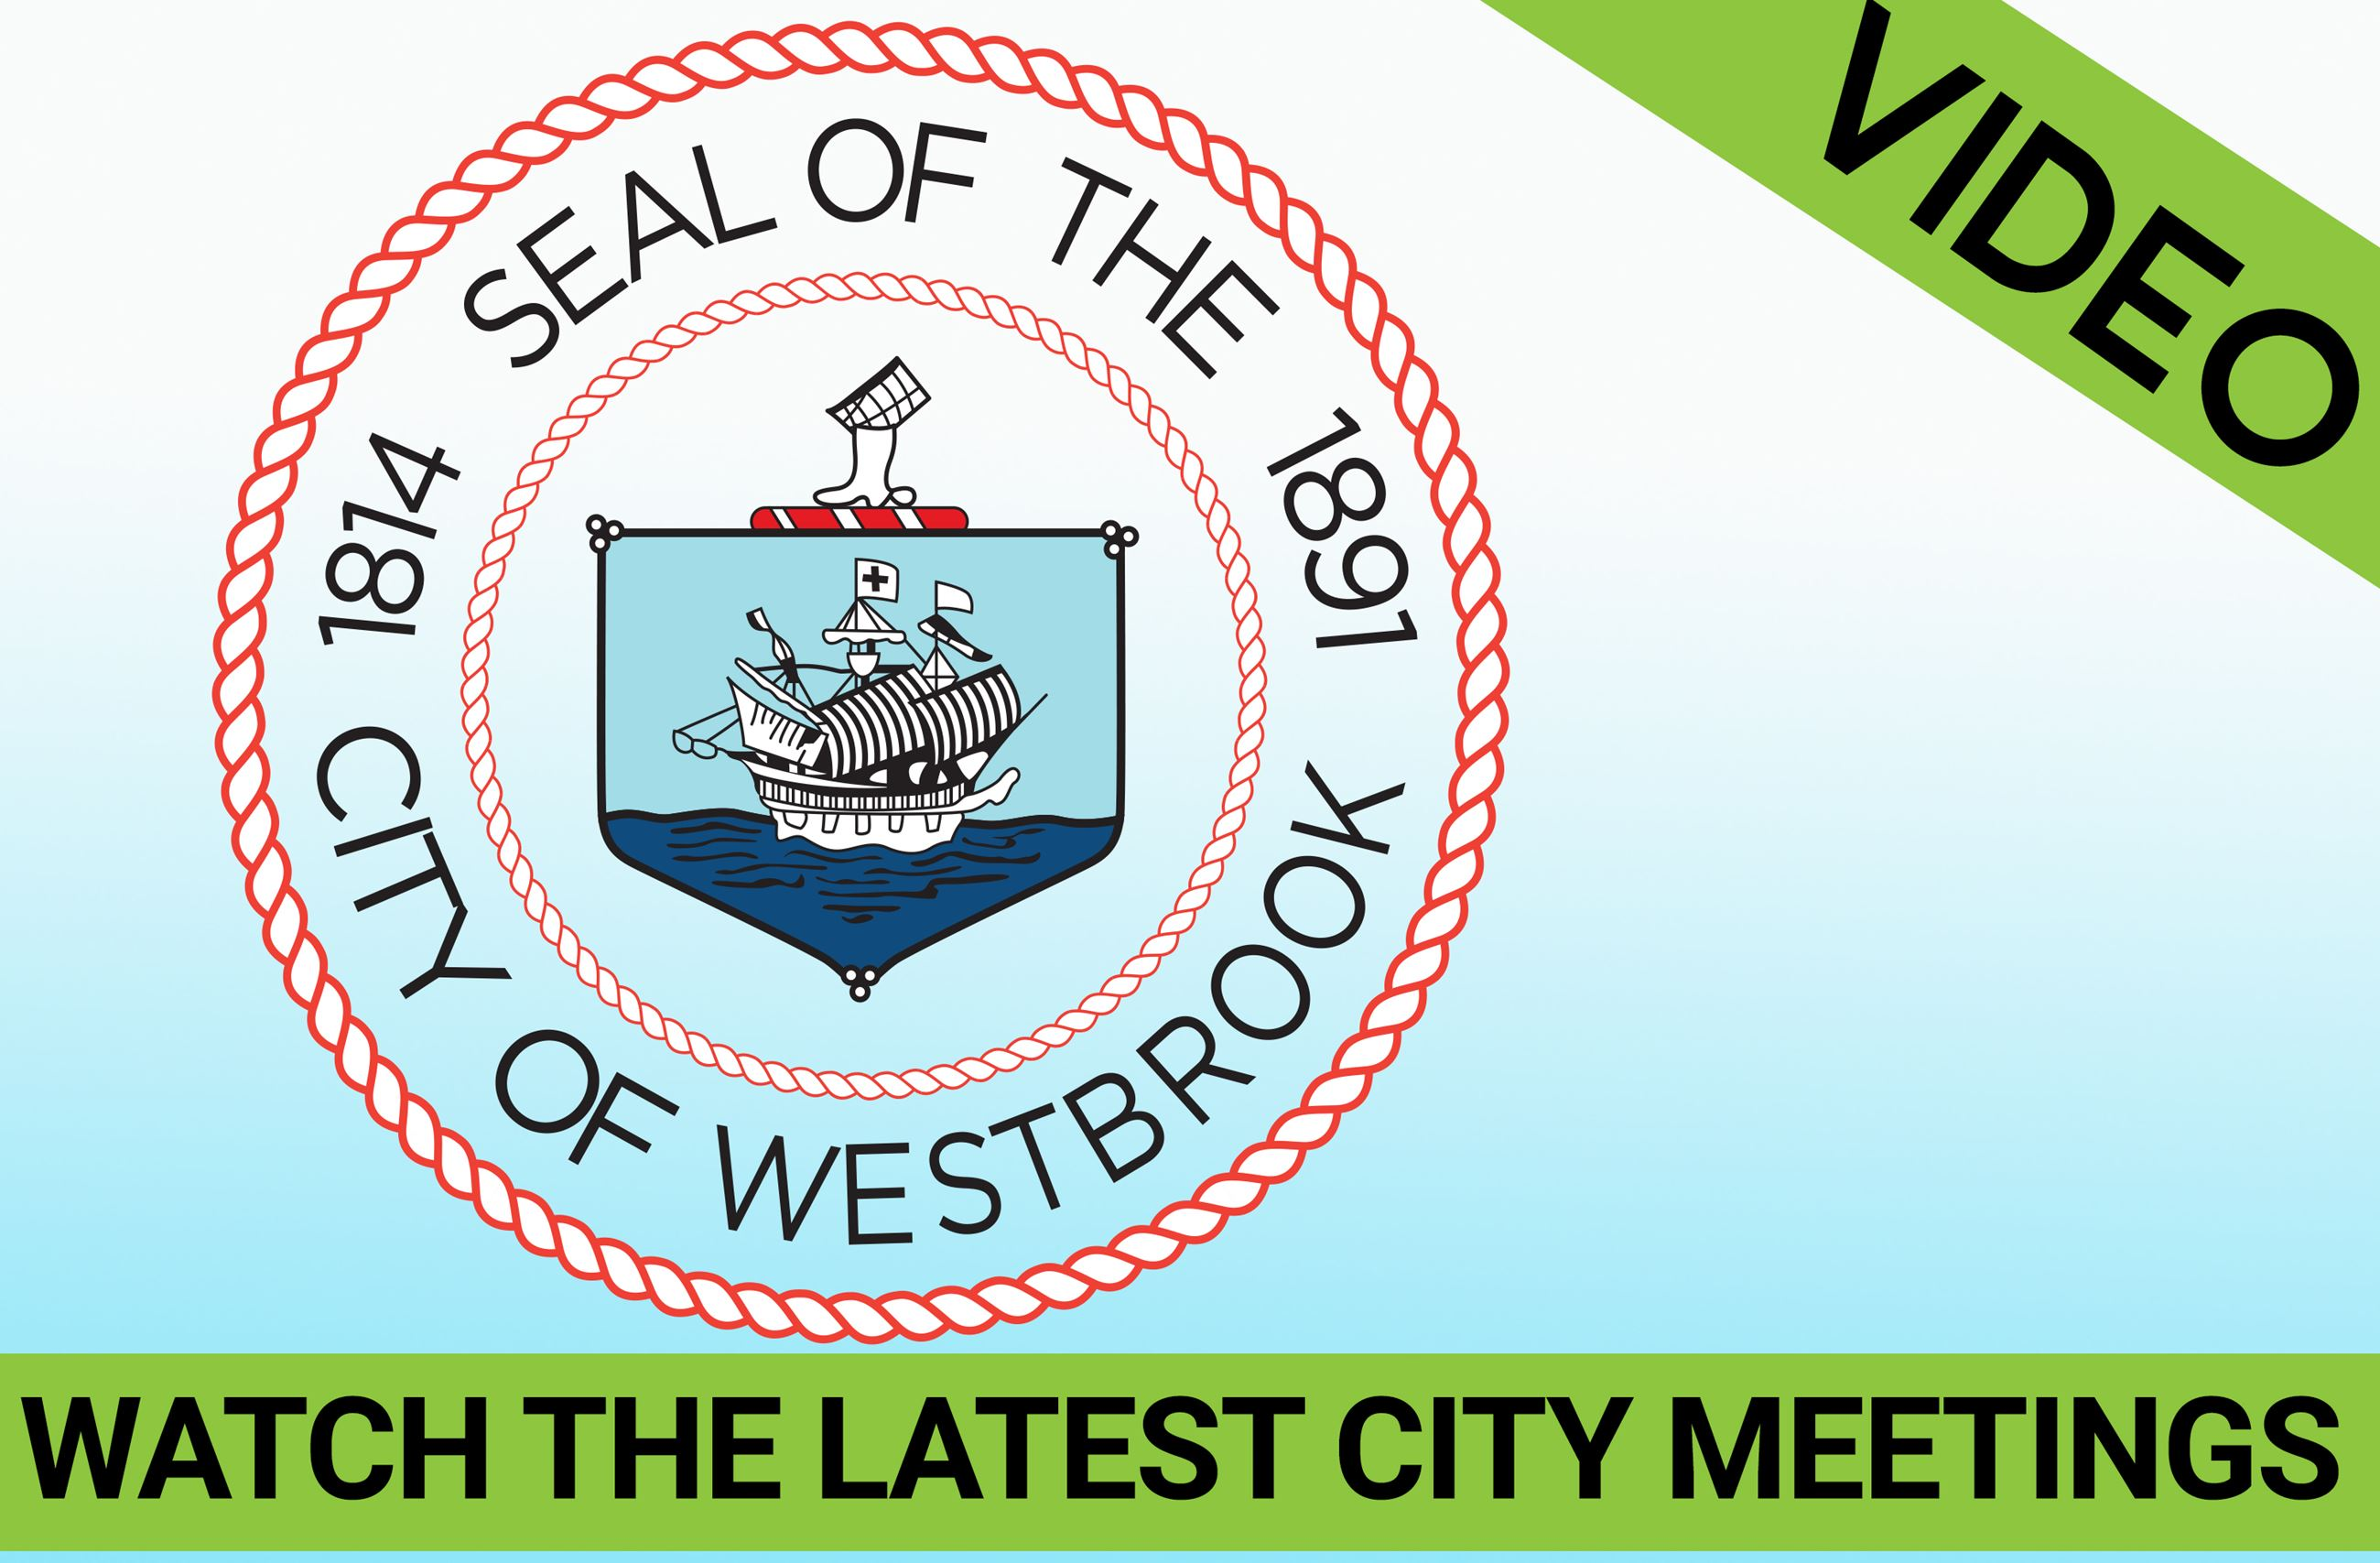 Latest City Meetings News Flash